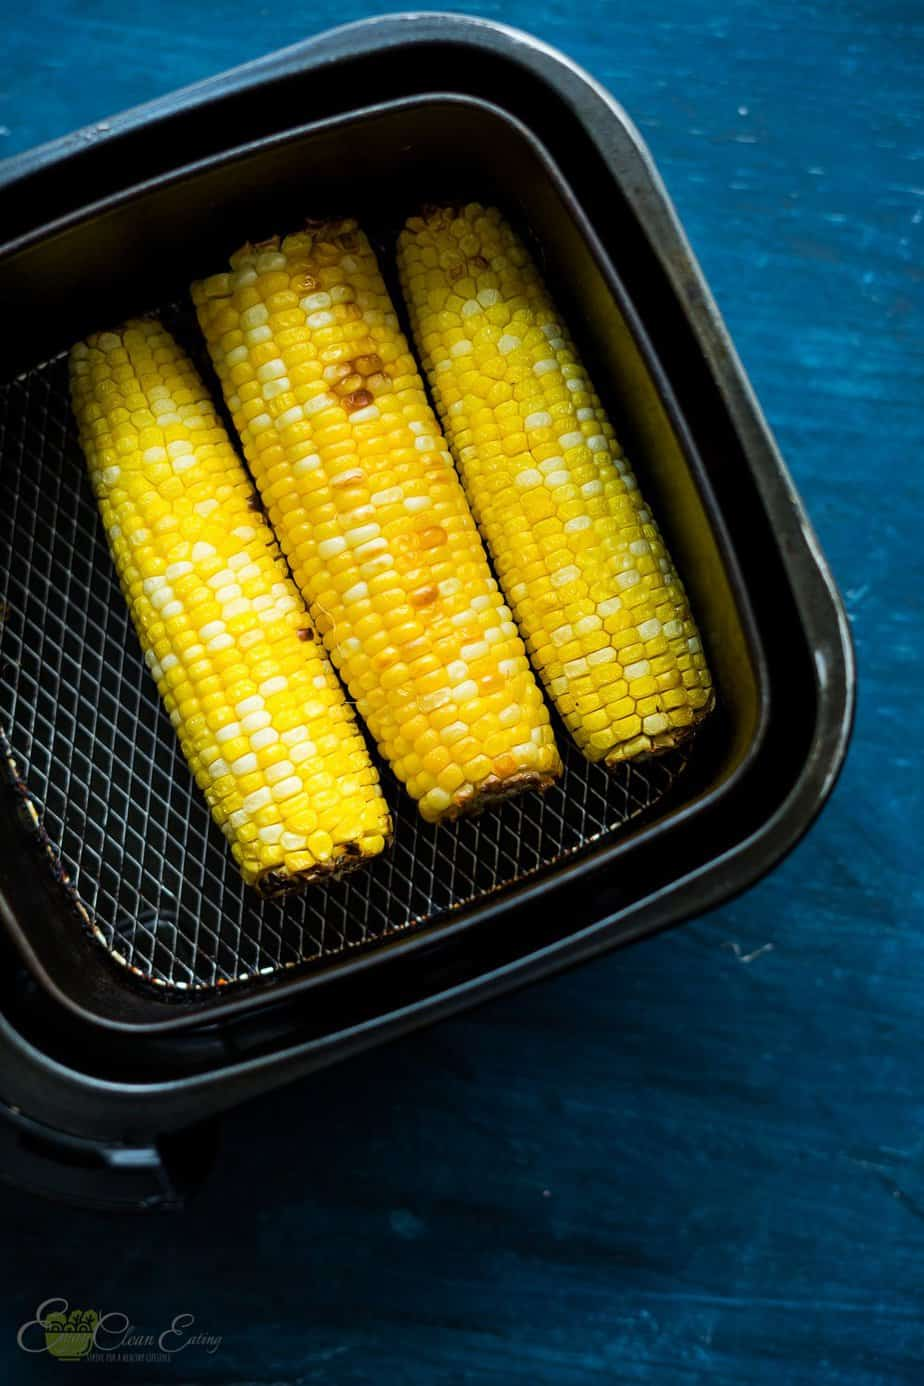 perfectly cooked corn on the corn inside the air fryer basket